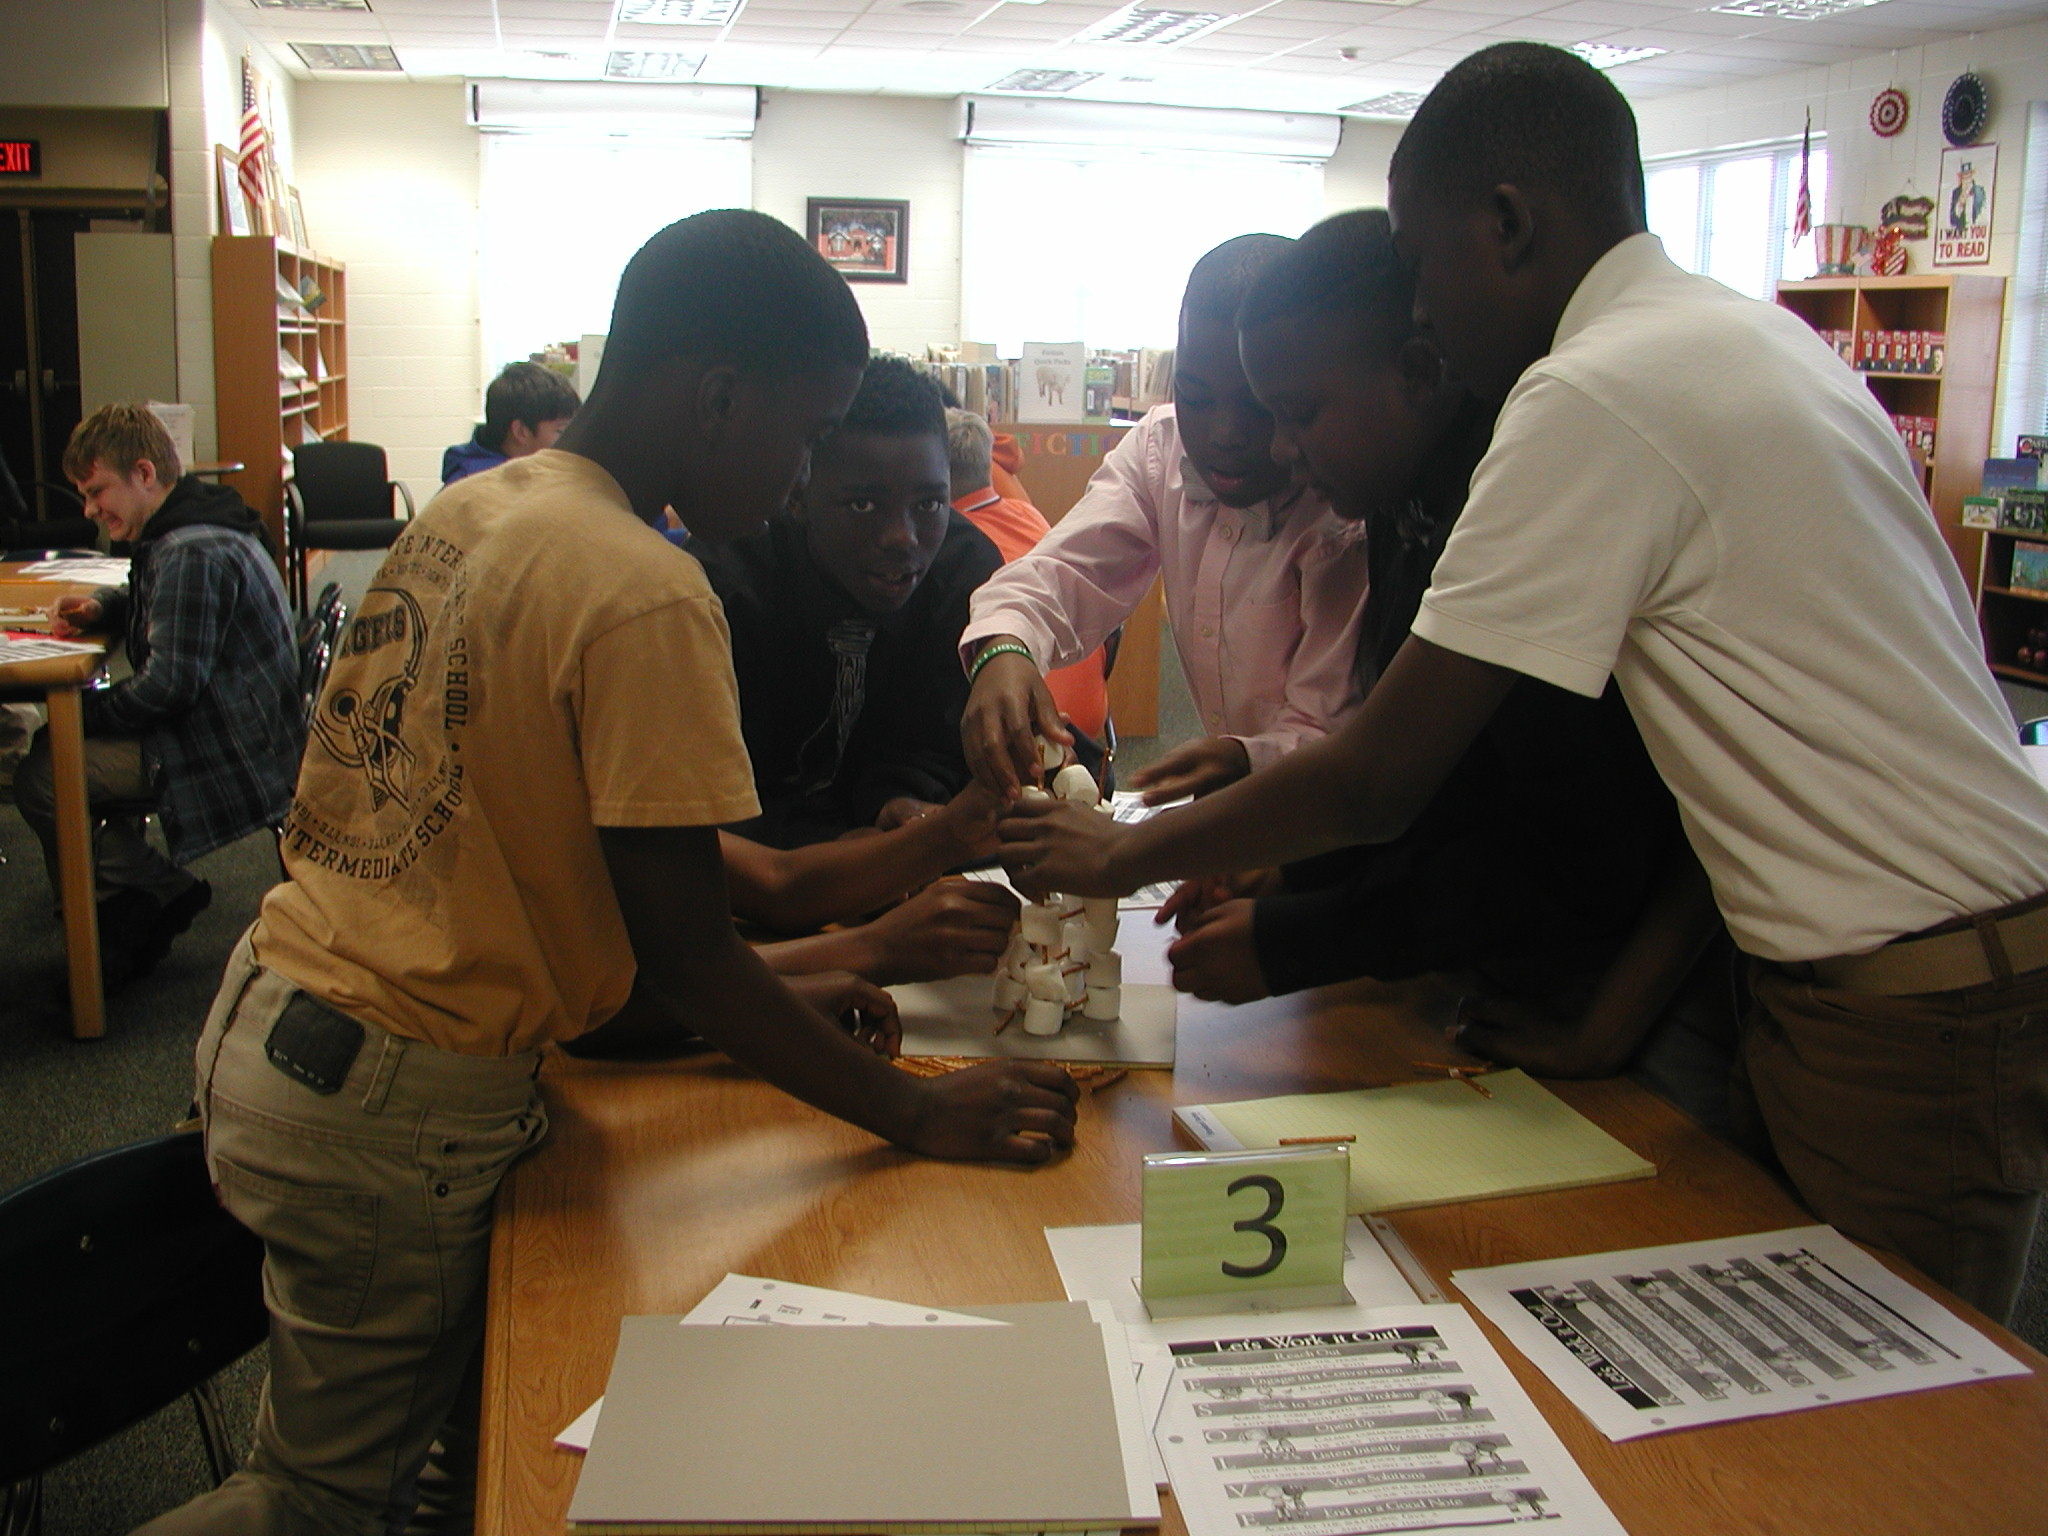 The Guys With Ties club learns about conflict resolution by doing hands-on activities.